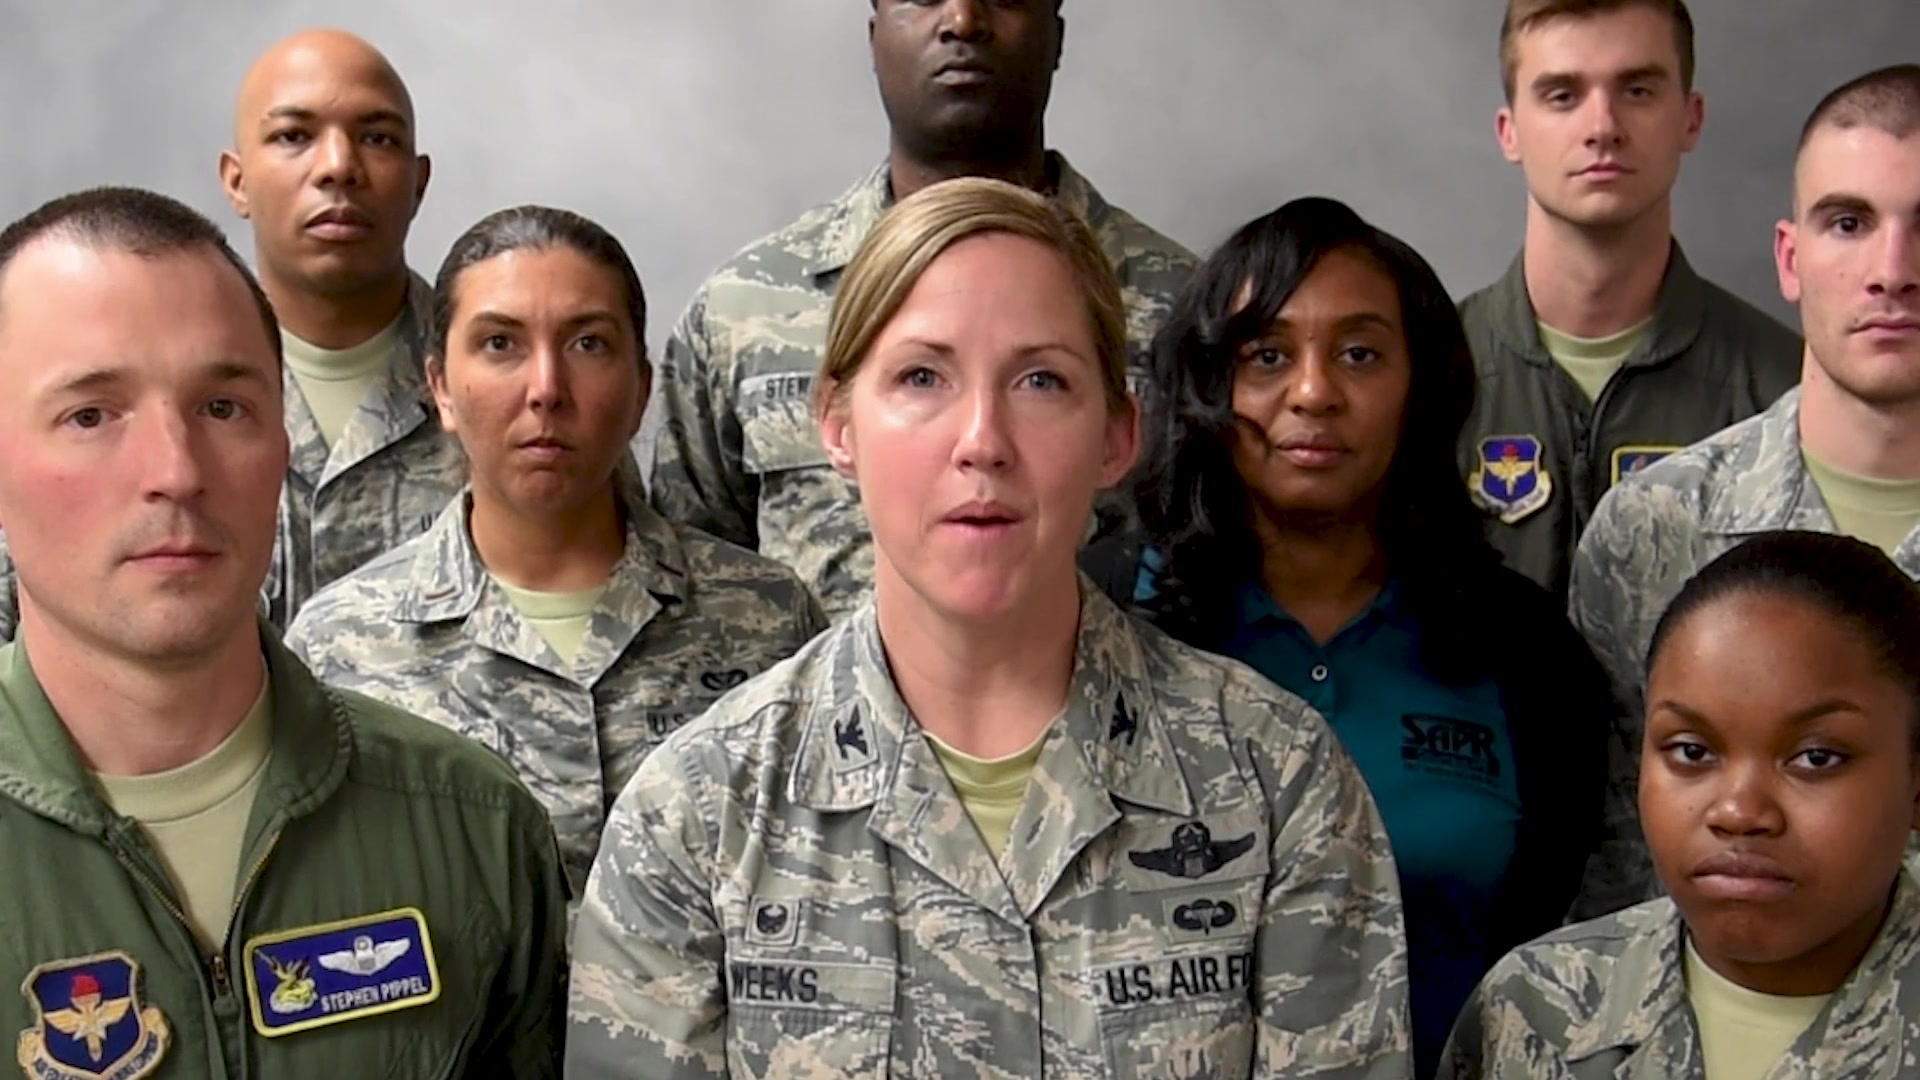 Columbus Air Force Base brings awareness to the number of people affected by sexual violence. Sexual violence affects hundreds of thousands of Americans each year. Among them are our brothers and sisters in the United States Air Force.